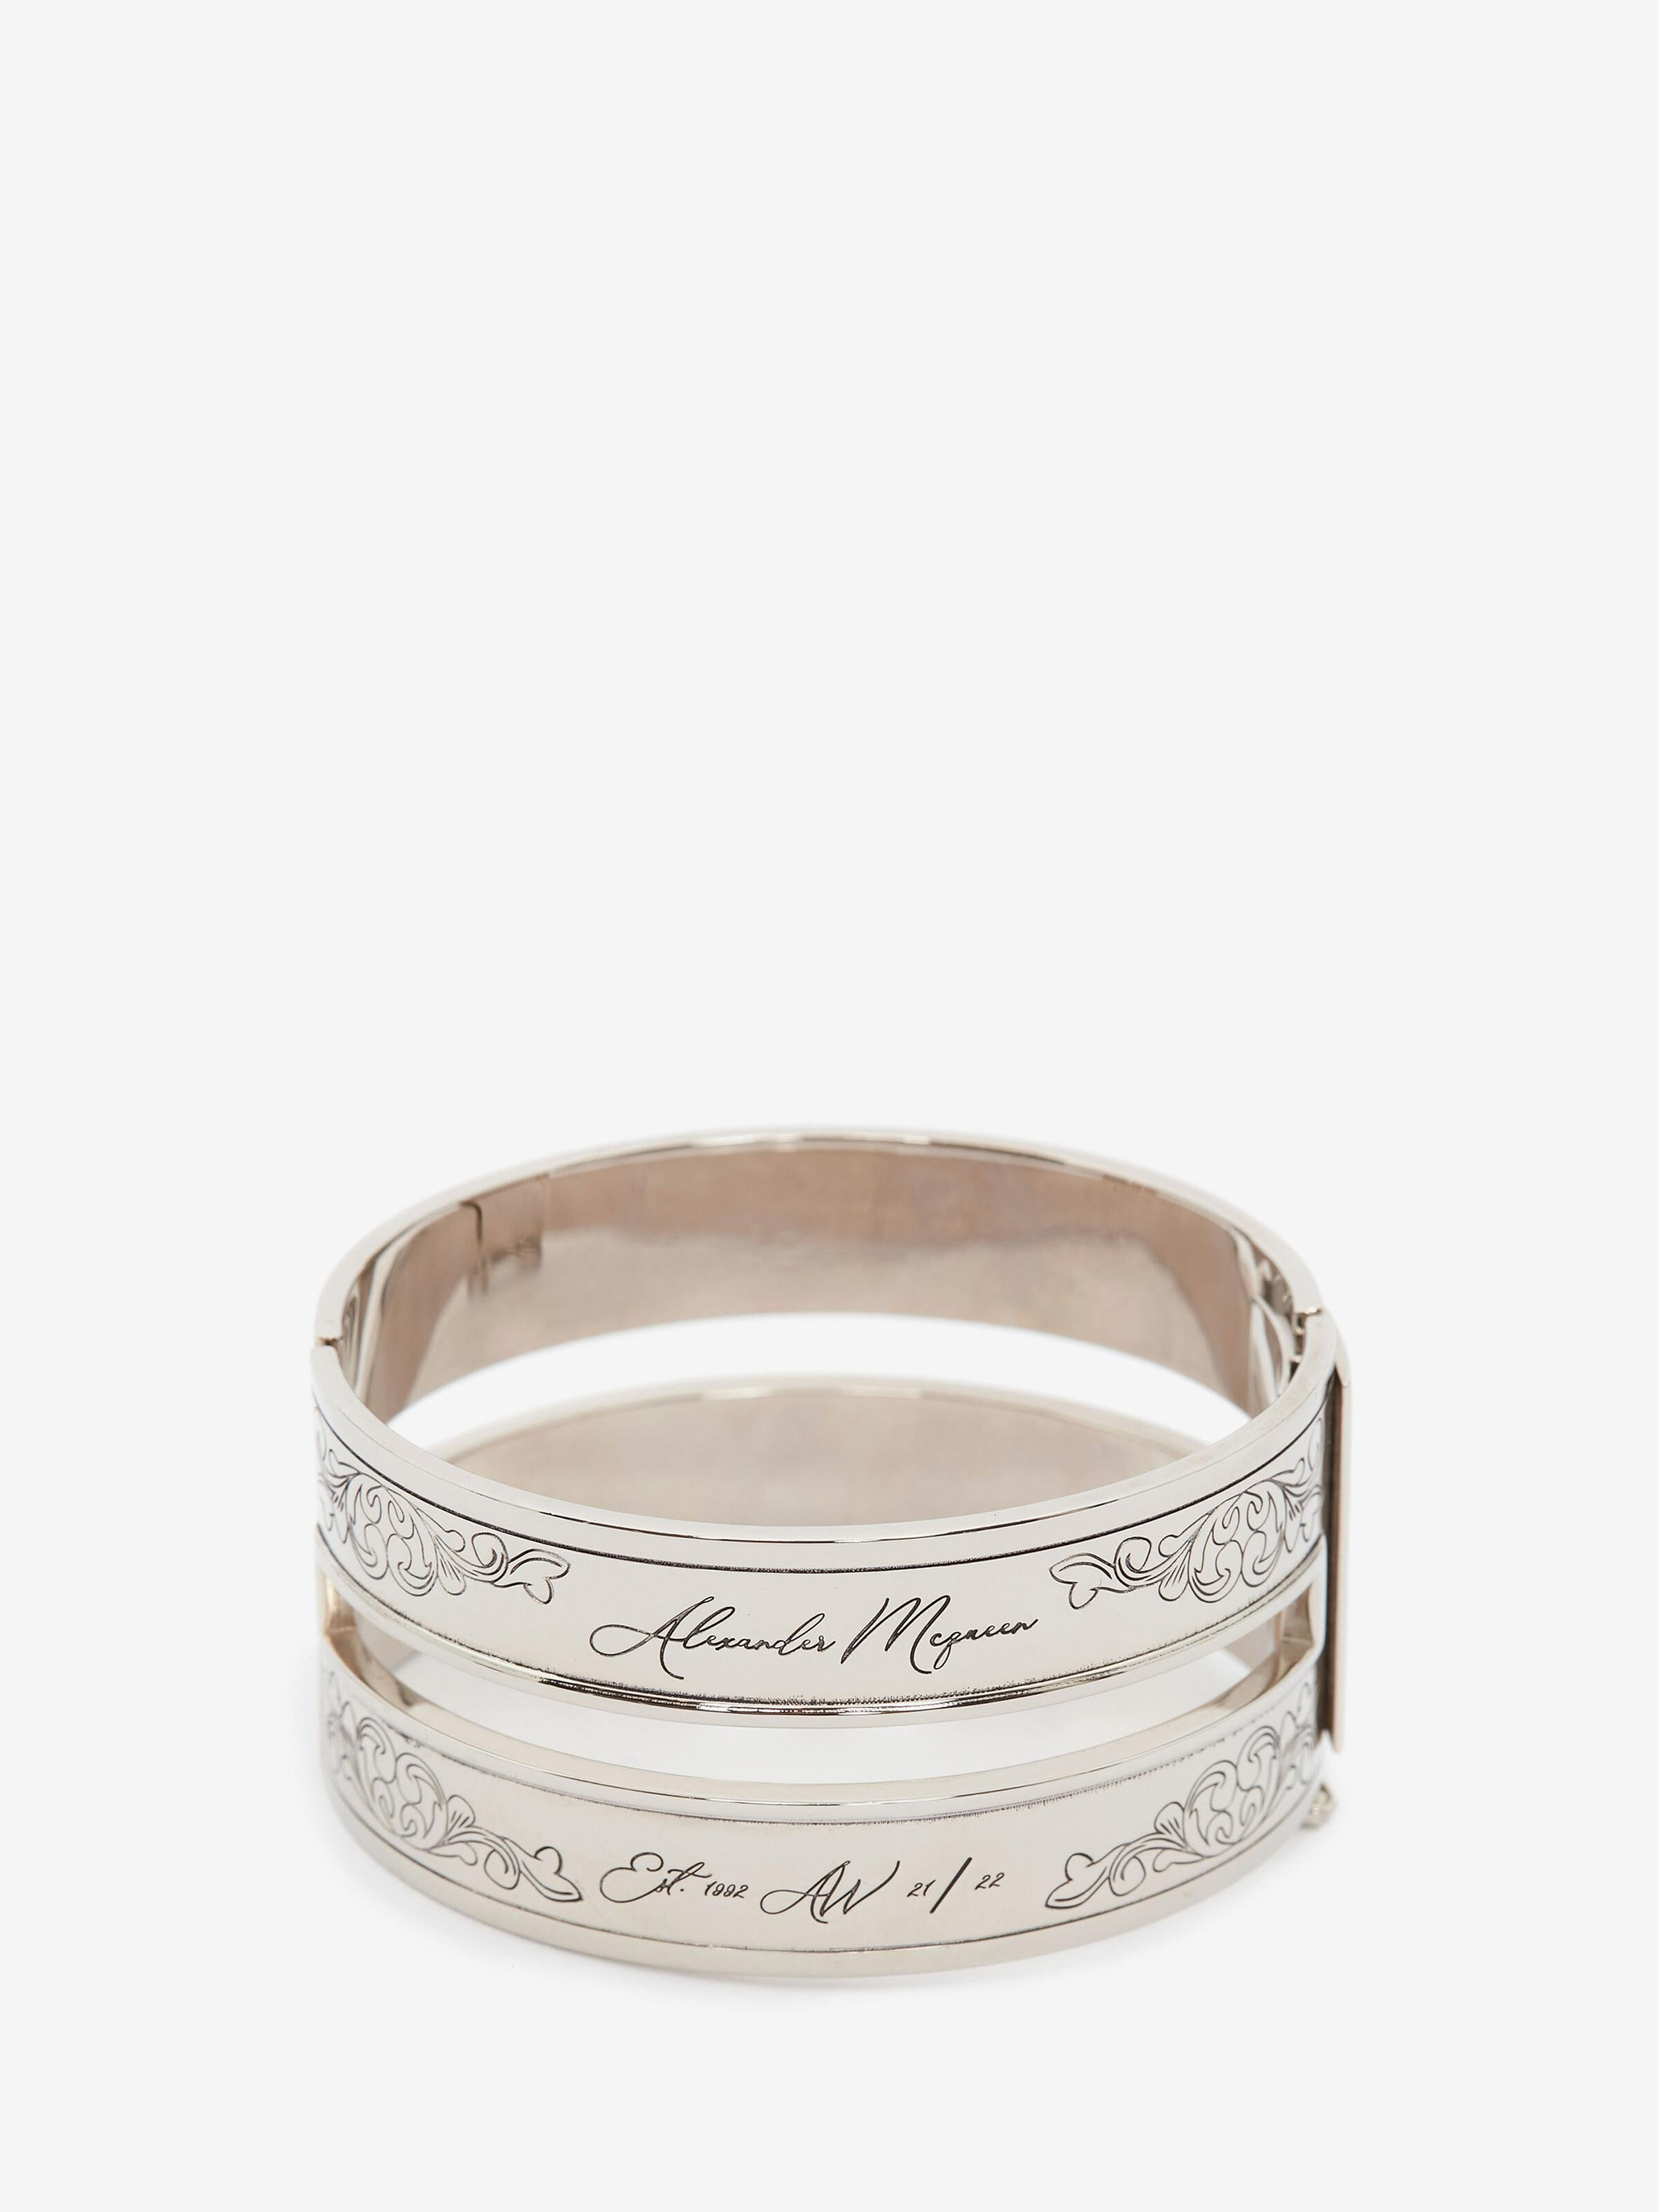 Cut-Out Engraved Cuff